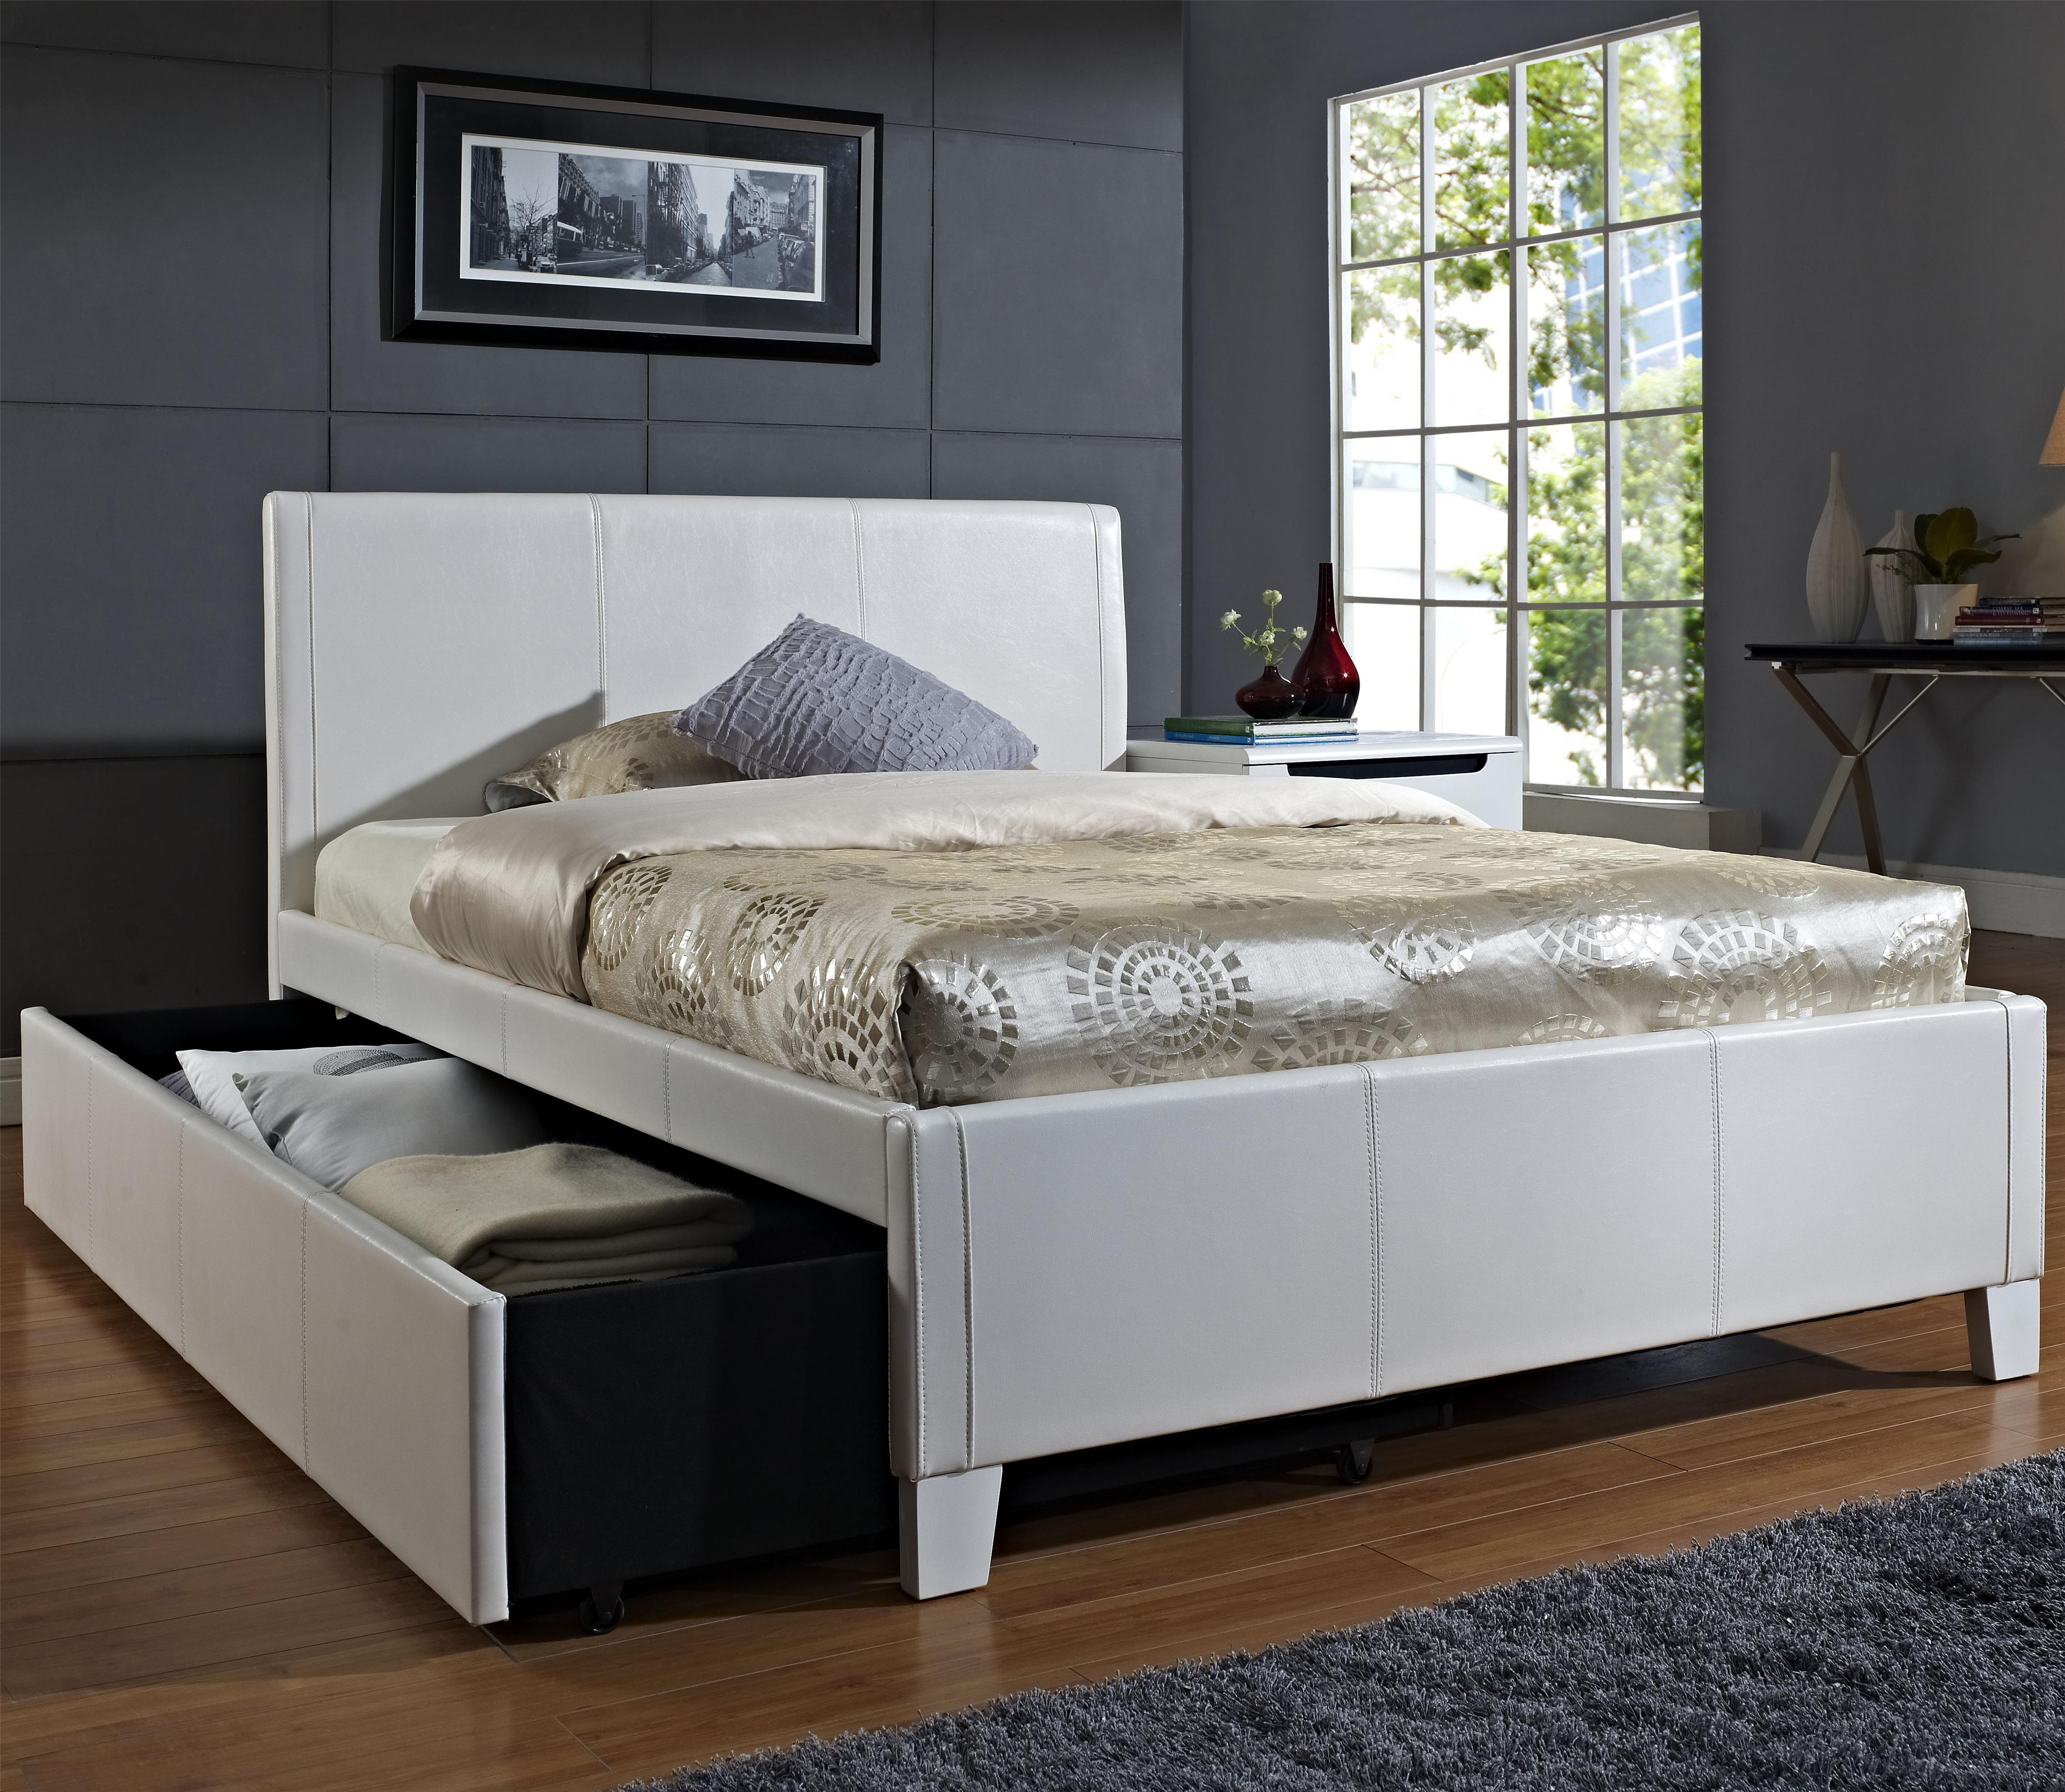 Discount Trundle Beds Fantasia Full Upholstered Youth Trundle Bed By Standard Furniture At Dunk Bright Furniture